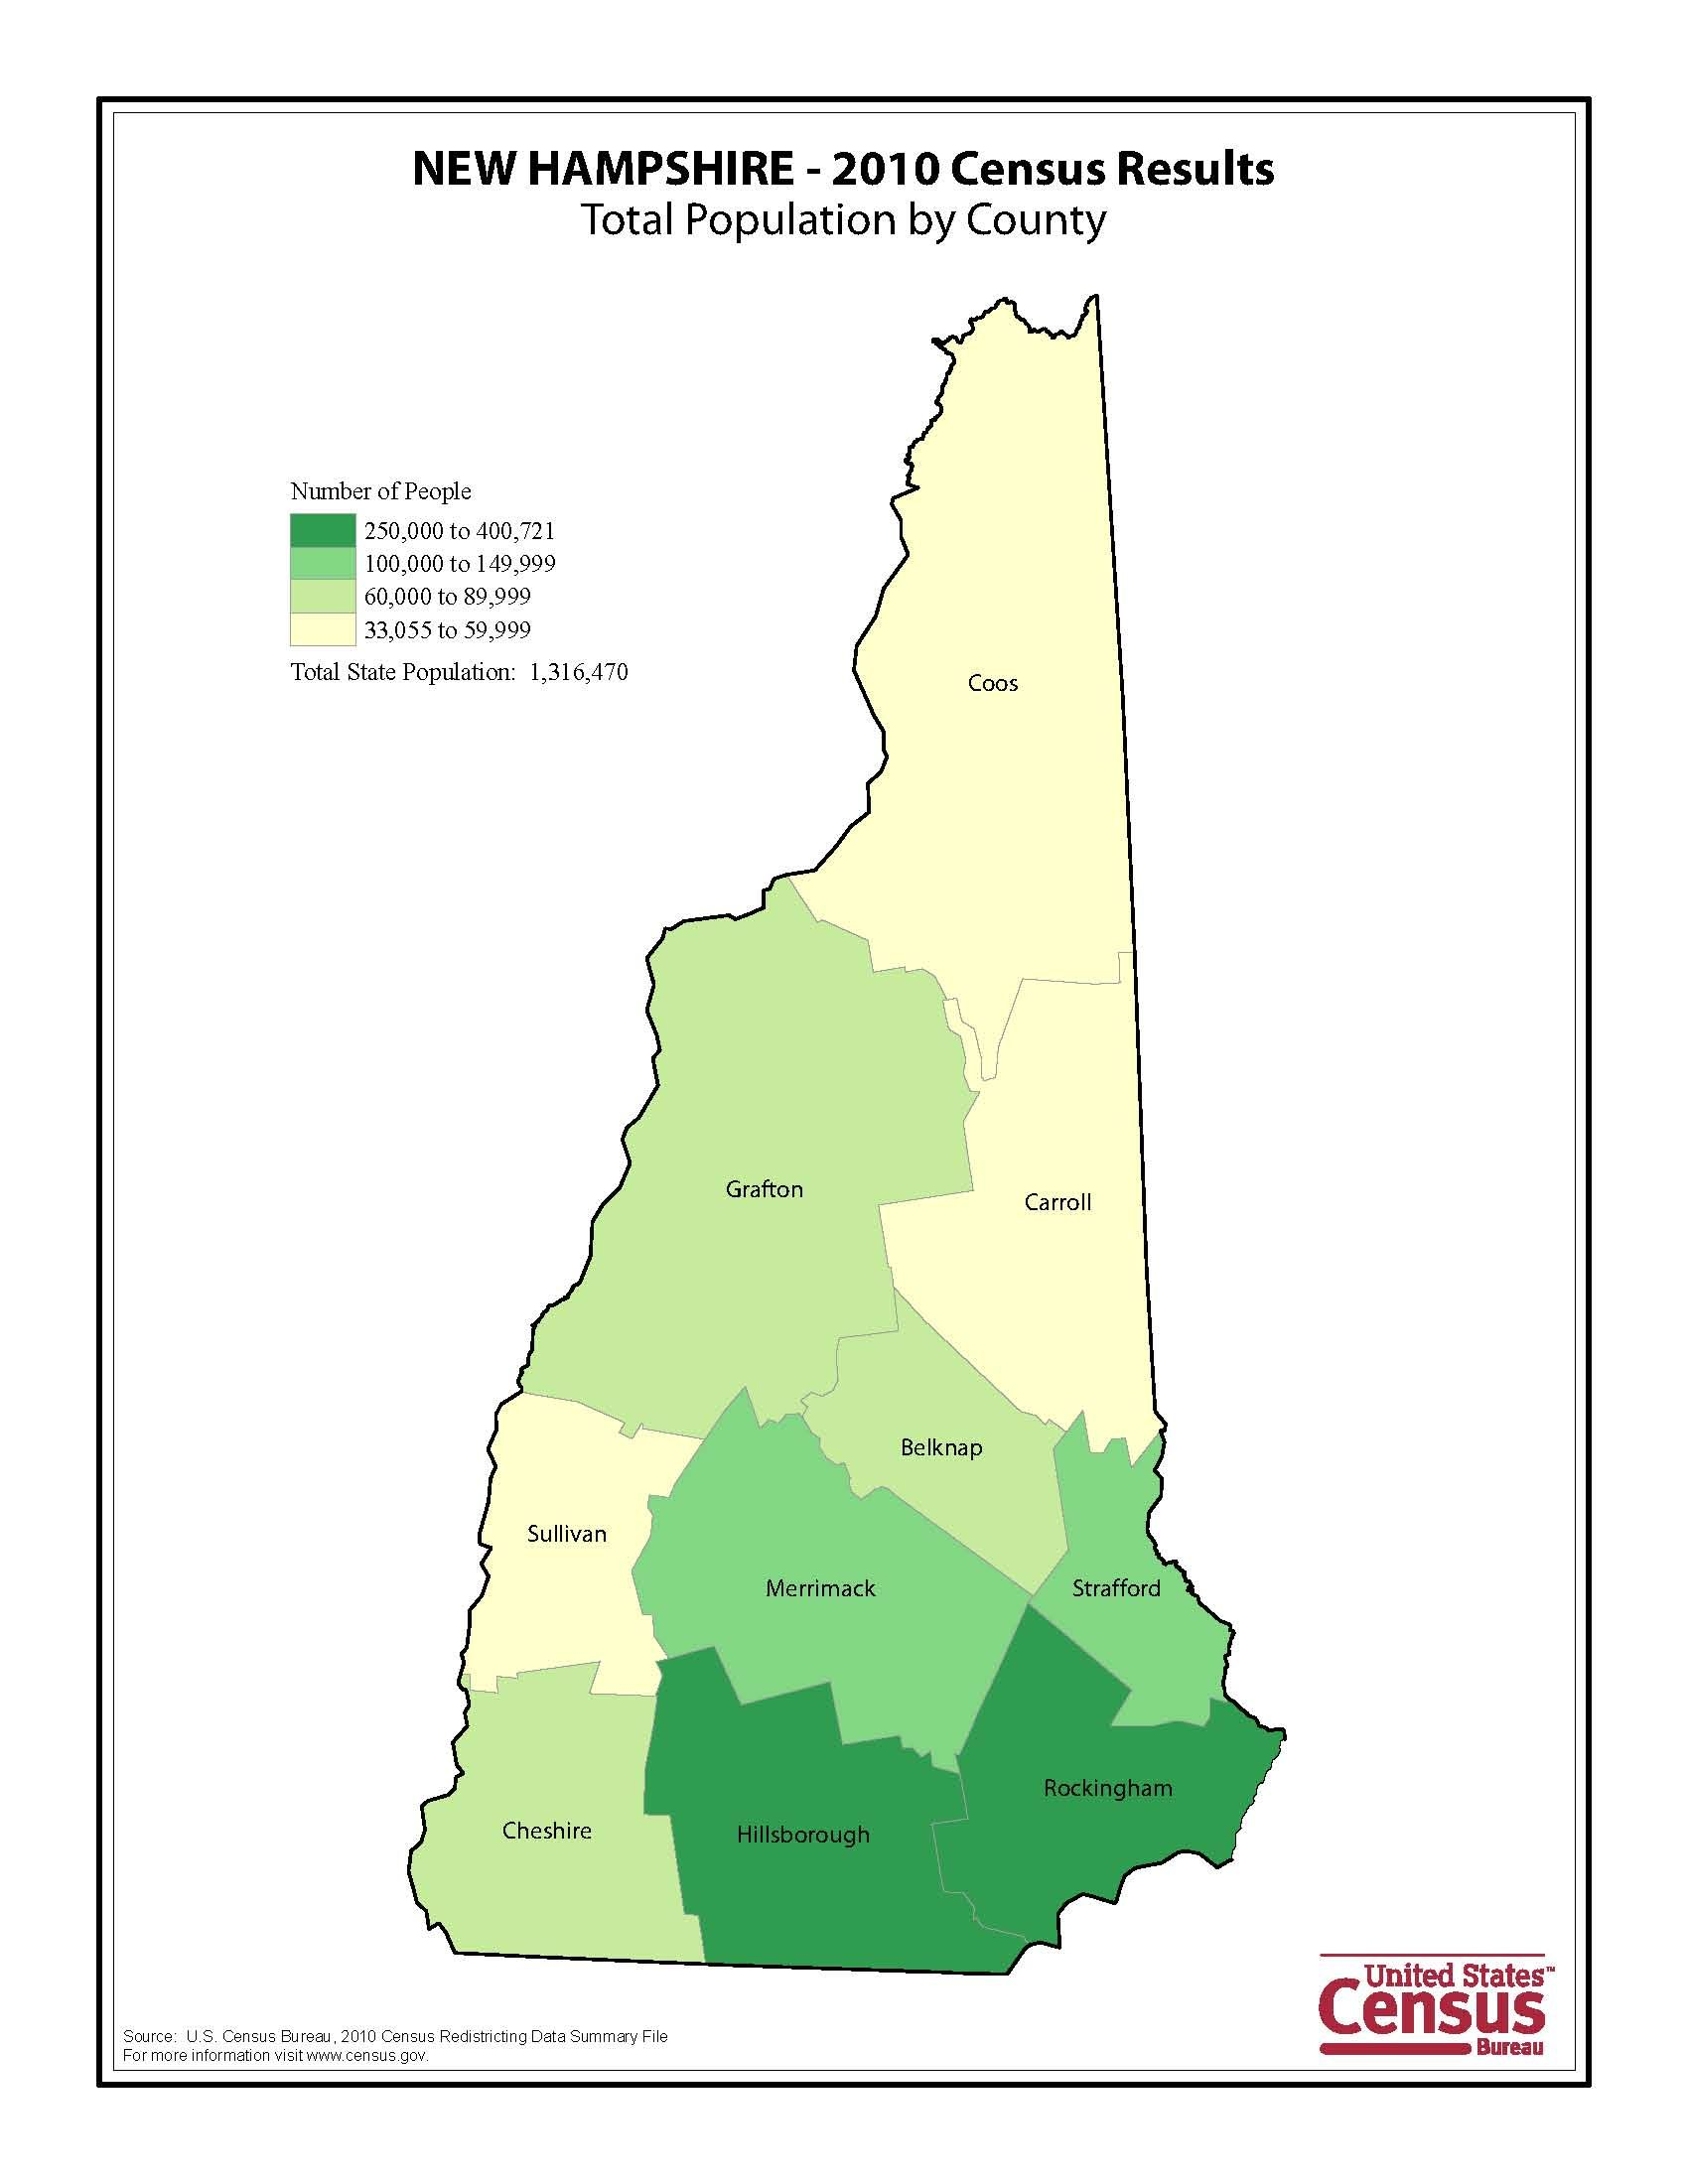 New Hampshire One Of The 13 Original Colonies Became The